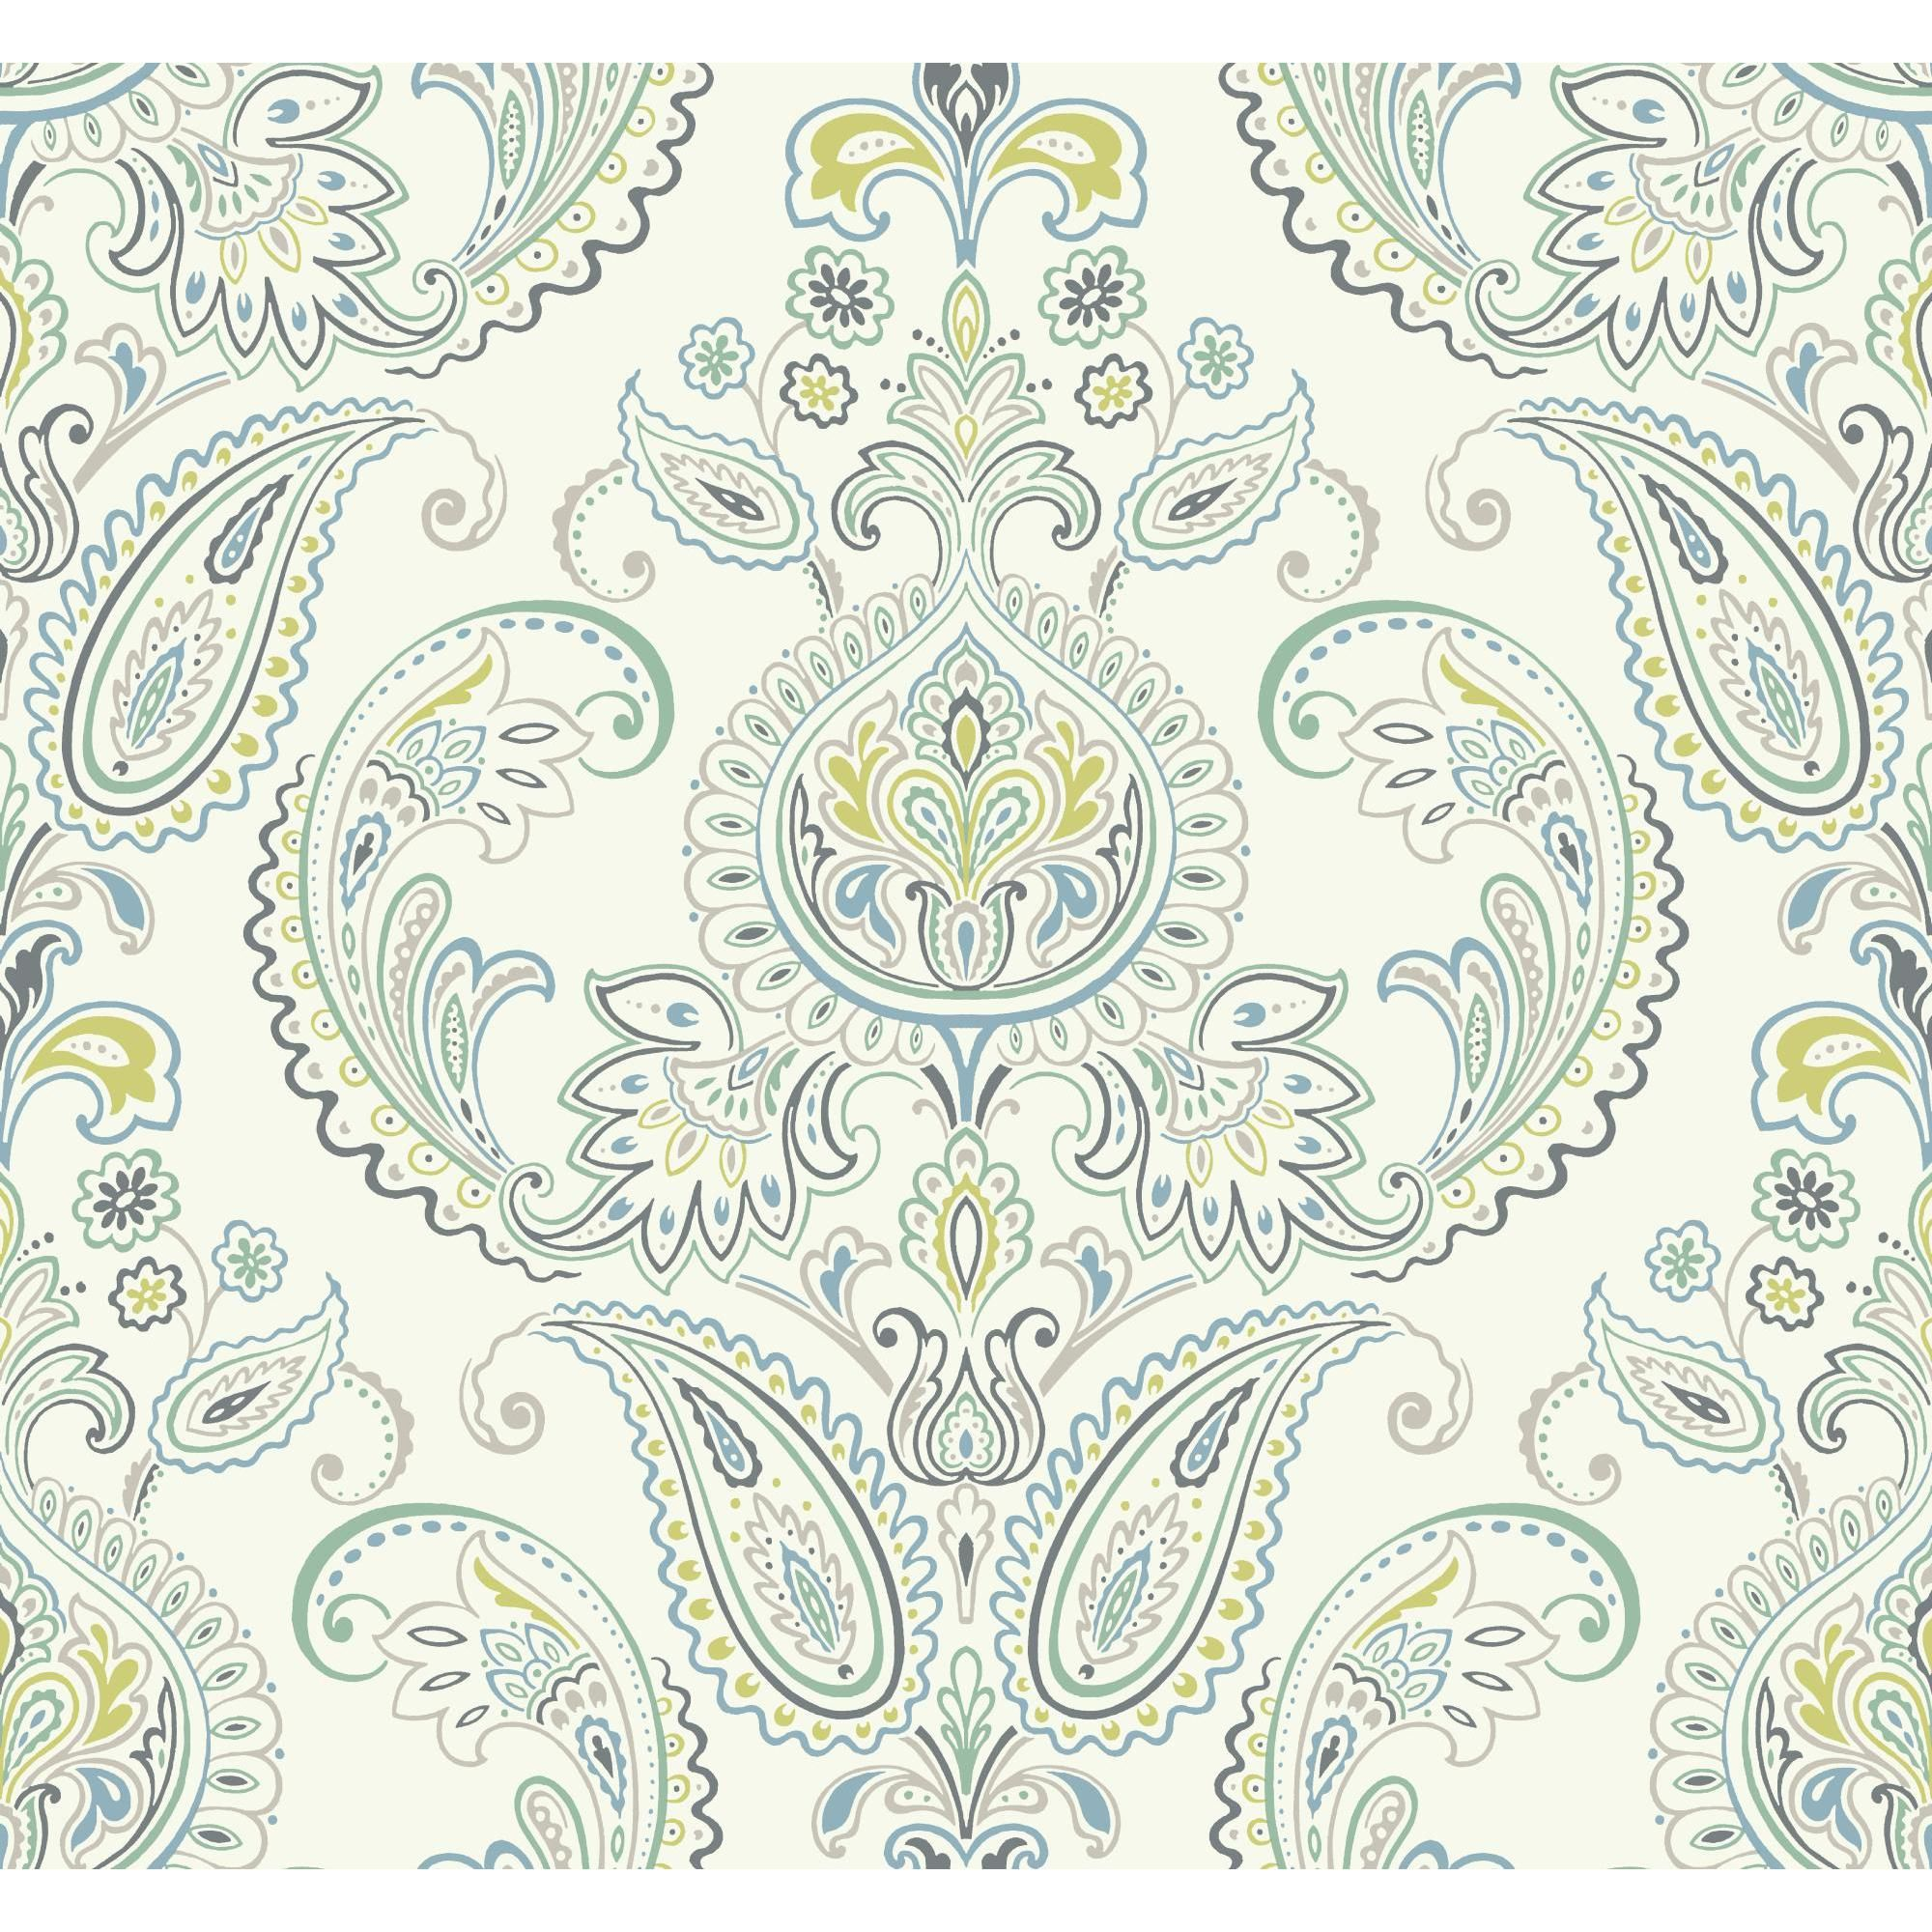 Kravet Design W33671635 (With images) Paisley